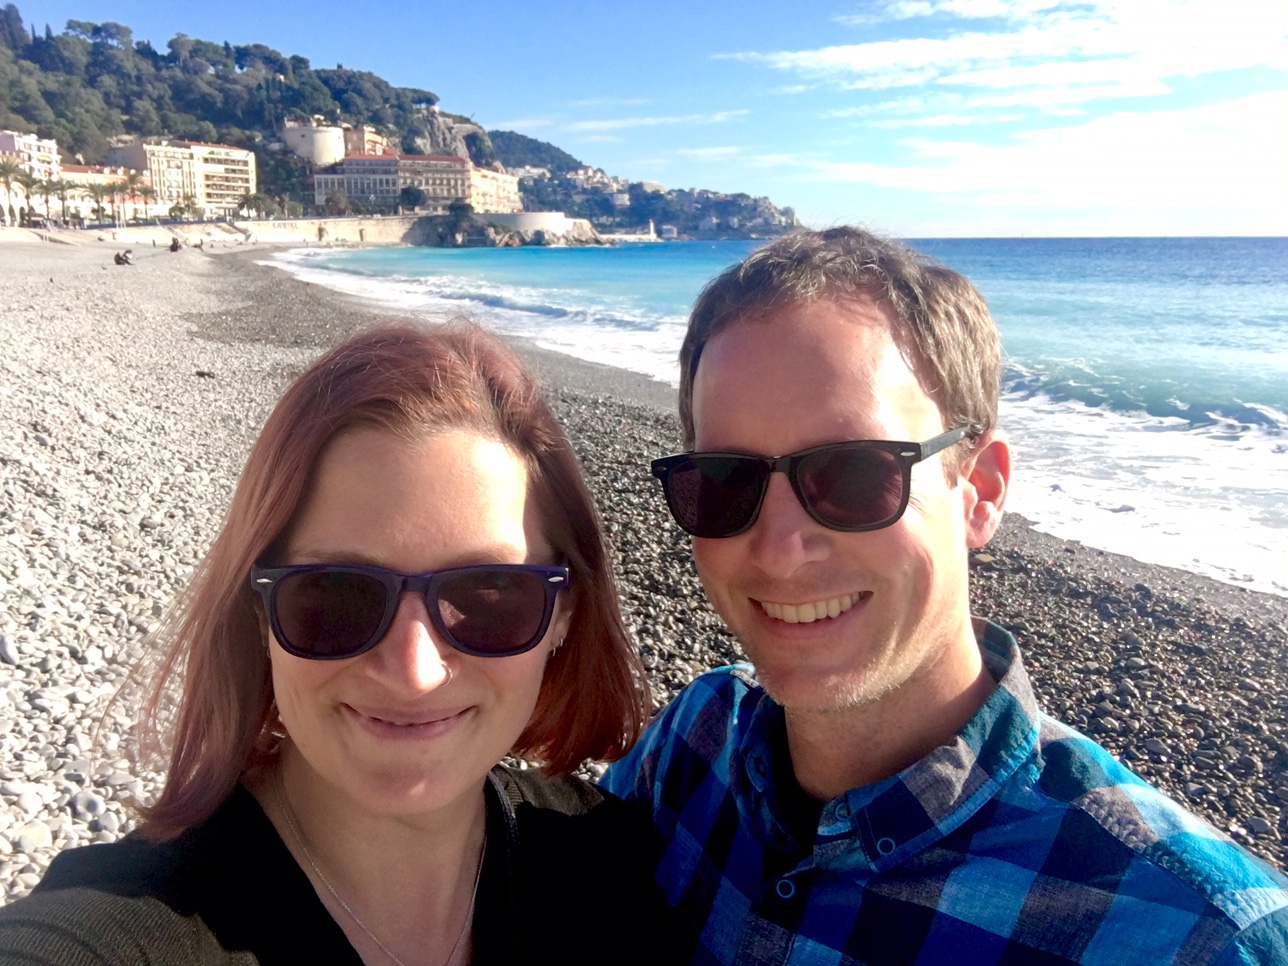 Beach in Nice, France // The Downsides of Off-Peak Travel // Our Next Life, early retirement, financial independence, FIRE, retire early, work optional